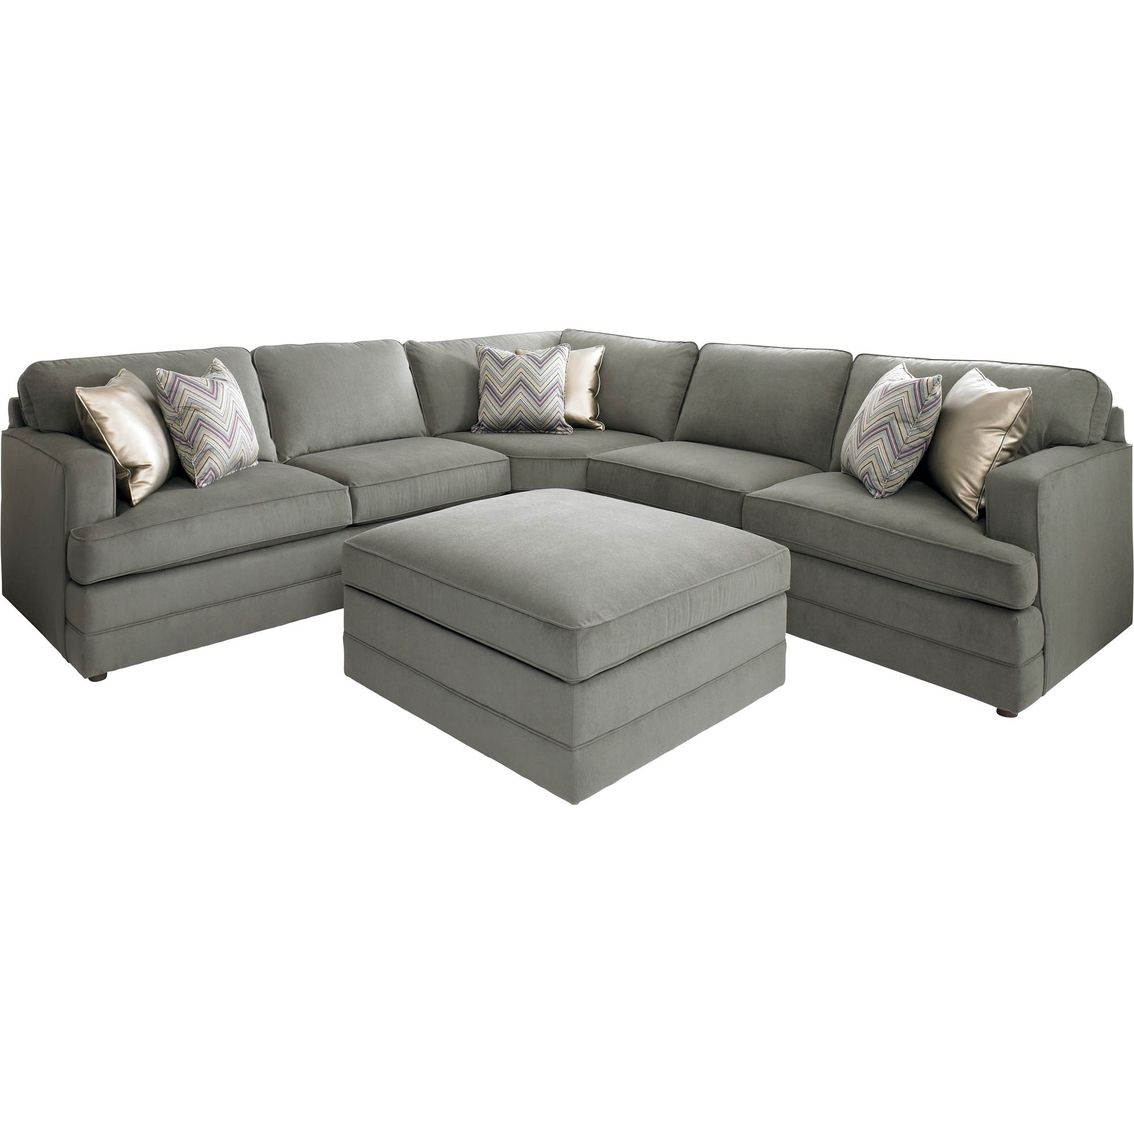 Best Bassett Dalton L Shaped Sectional Sofa With Ottoman 400 x 300